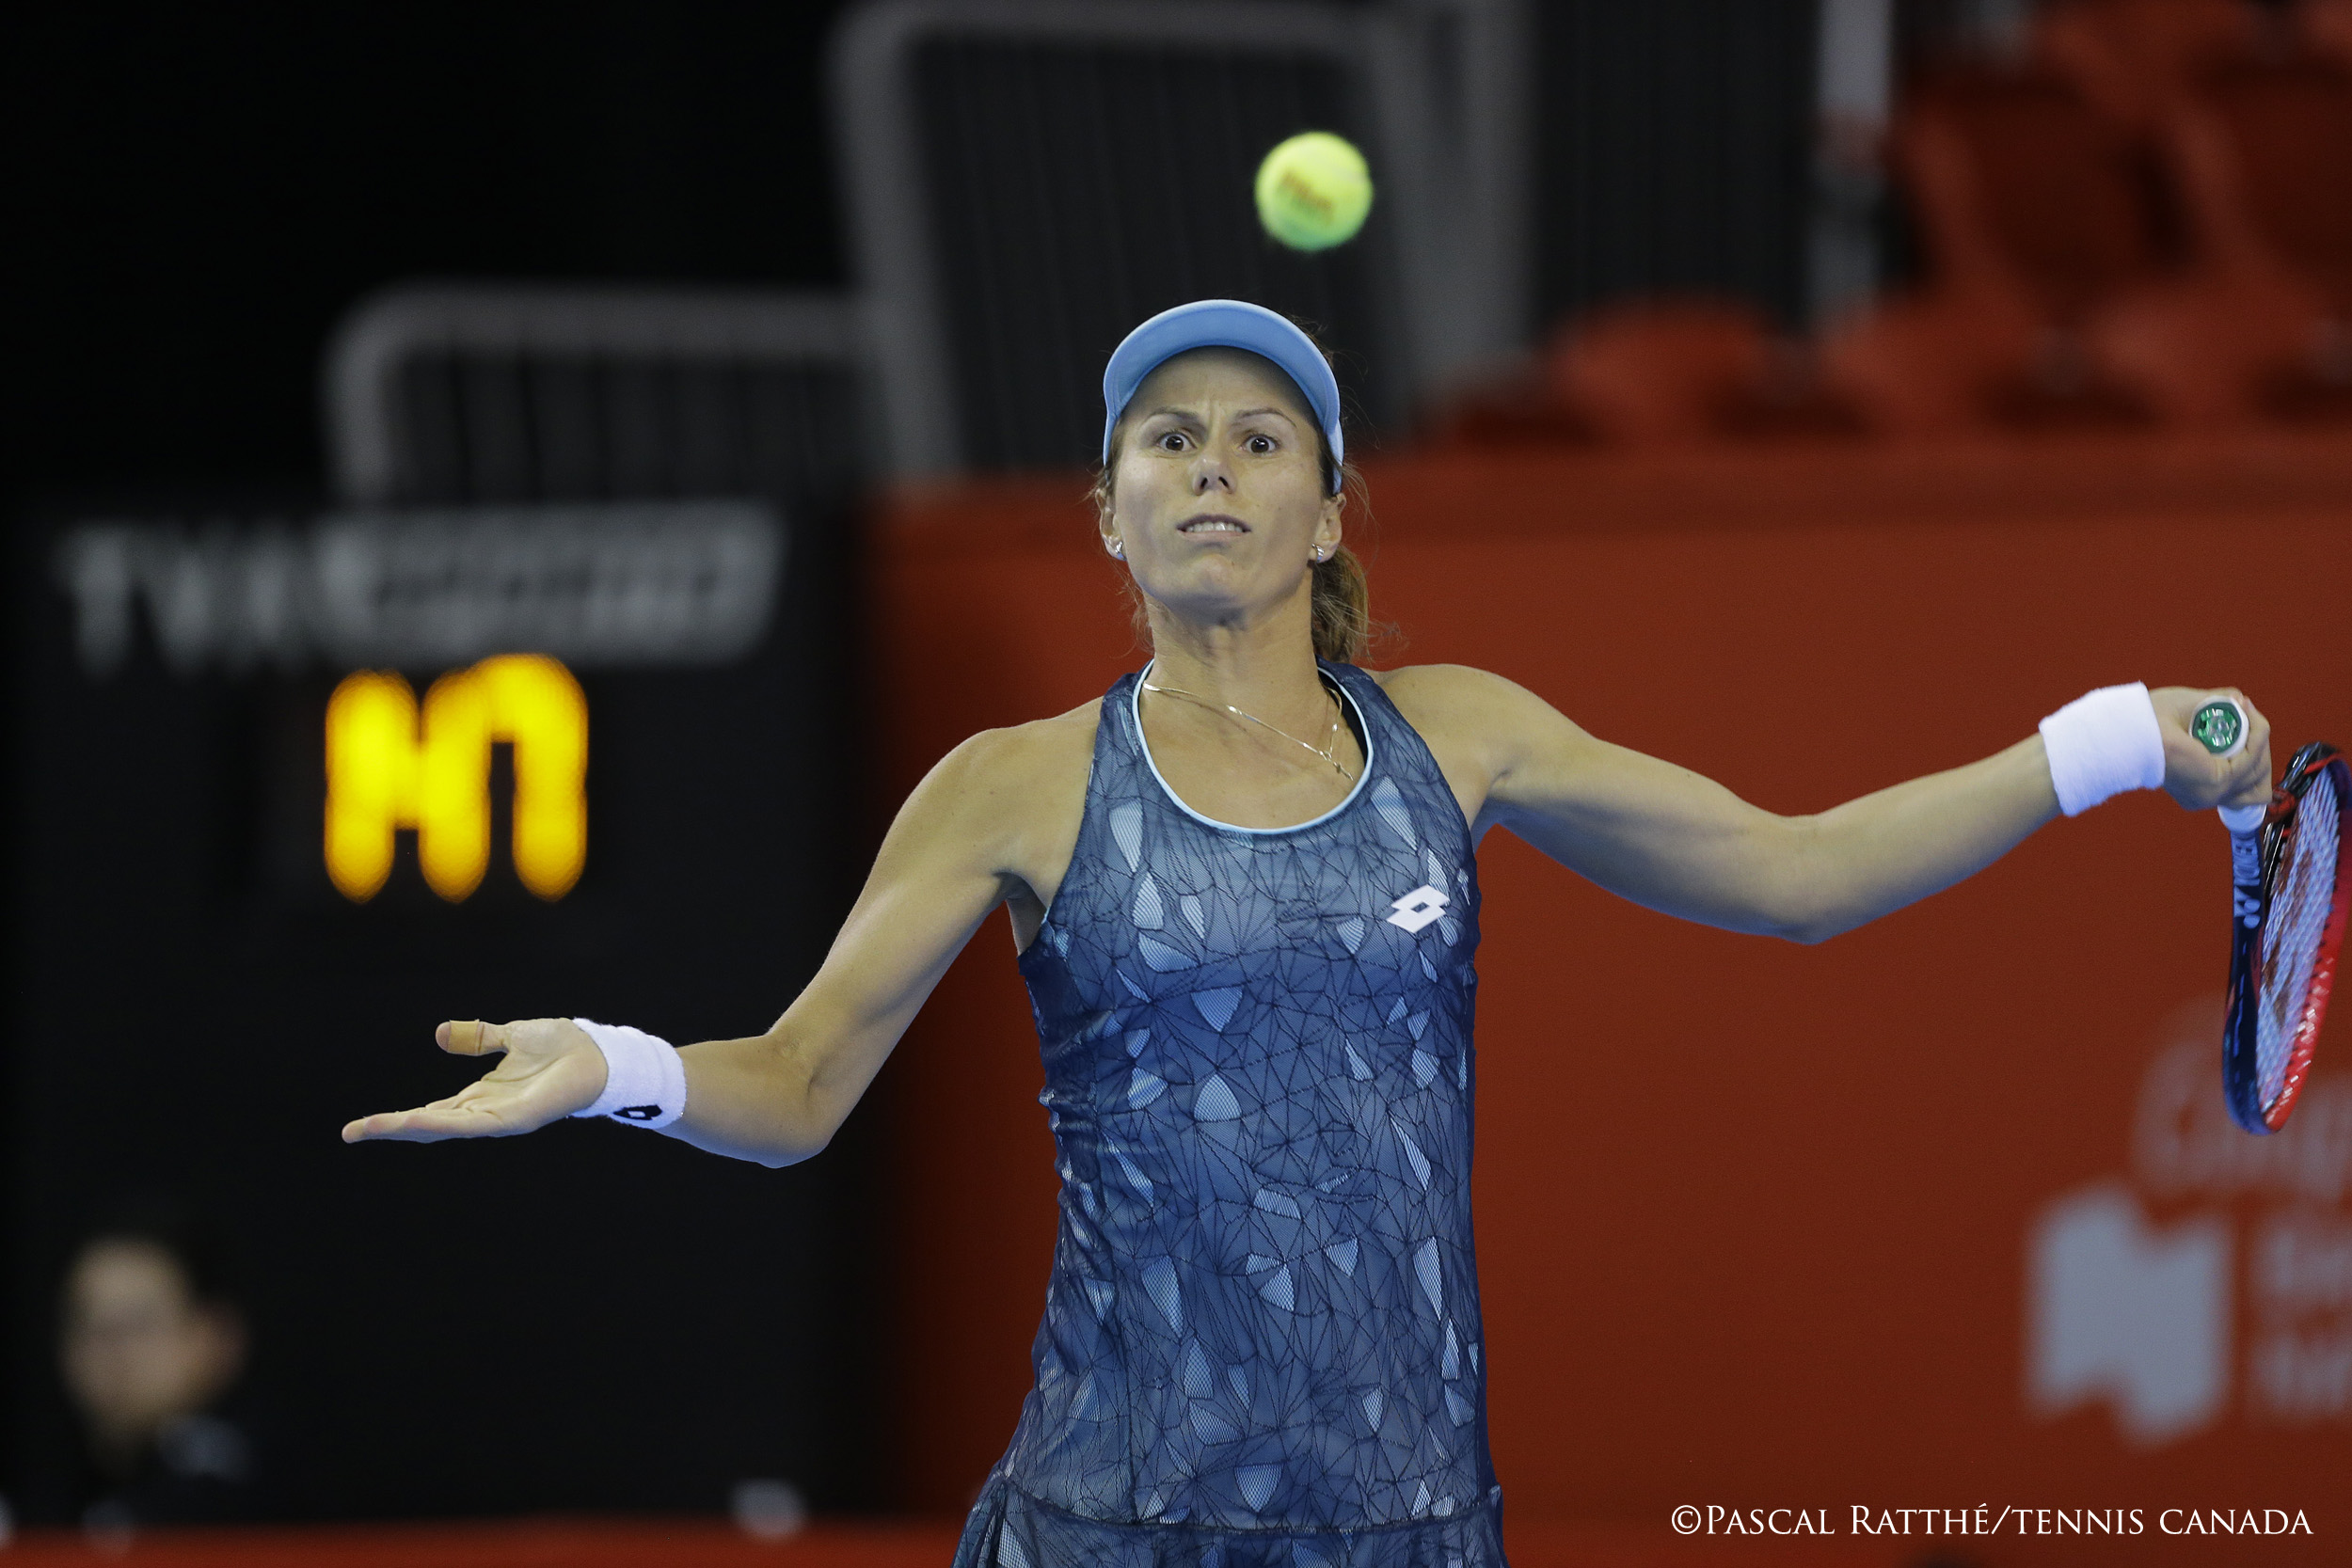 Dodin Opens Title Defence At National Bank Cup - Tennis ...Varvara Lepchenko Matches